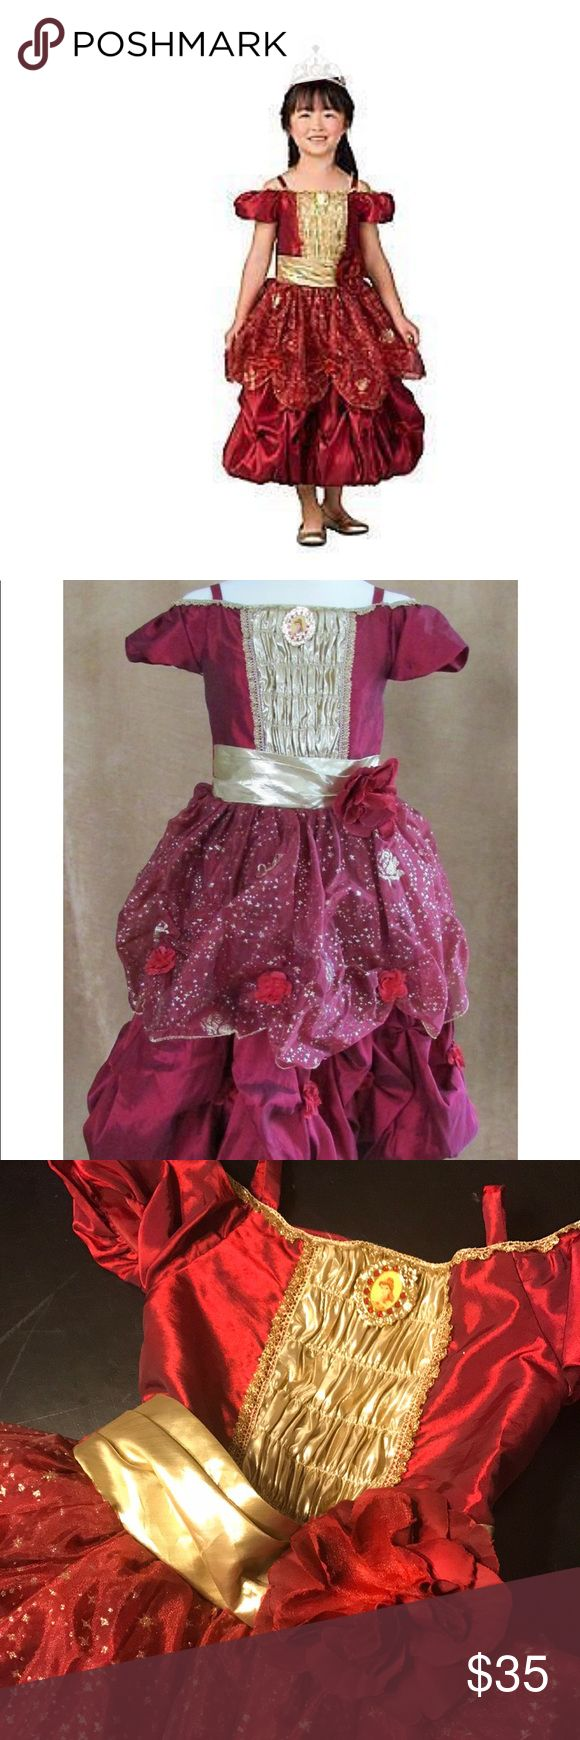 Disney store belle holiday red gold dress up Disney store  Princess belle dress  Size small 5/6  In excellent condition! Disney Dresses